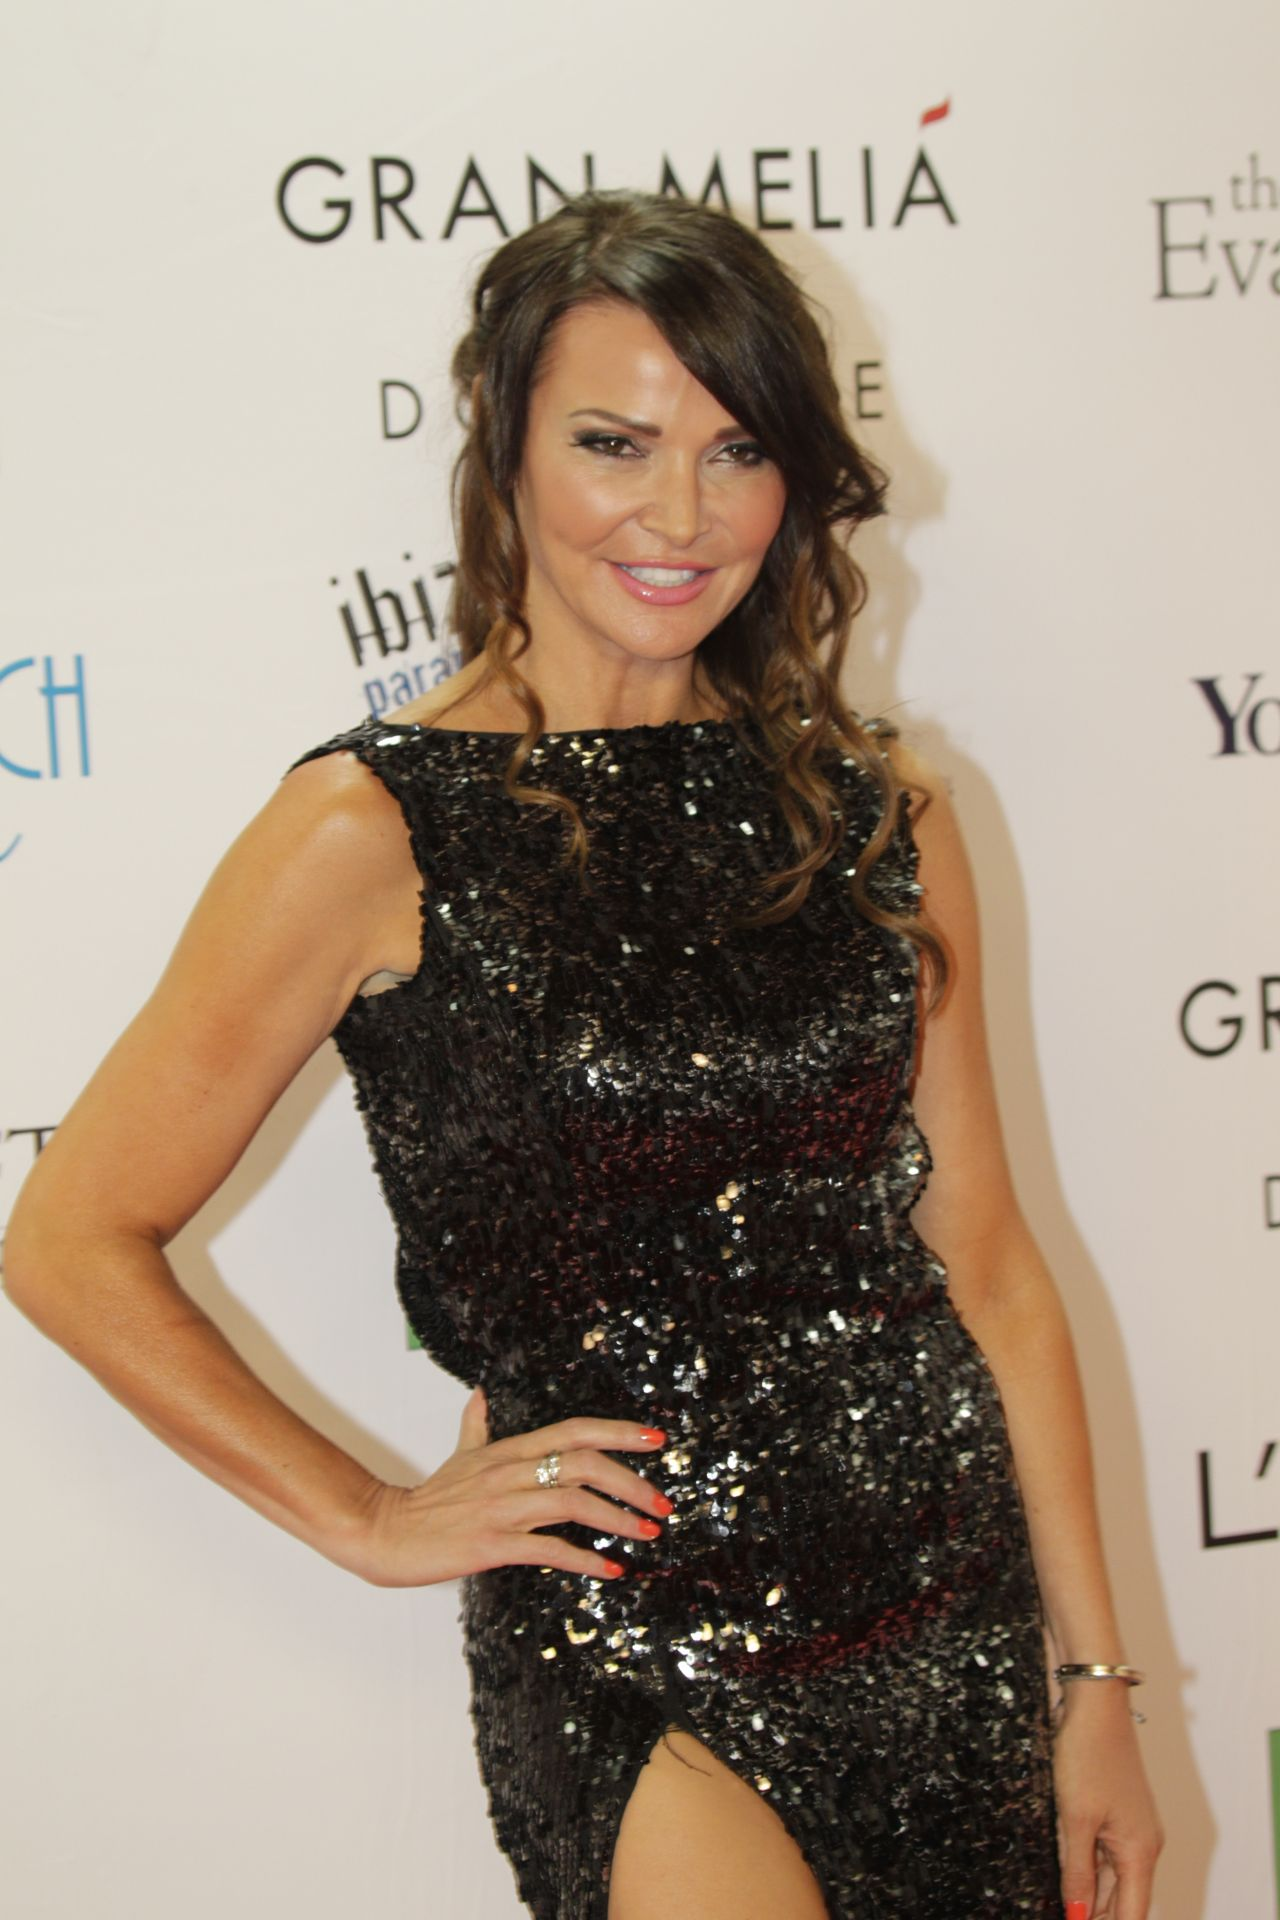 Lizzie Cundy Hosted the Global Gift Gala in Marbella for Charity